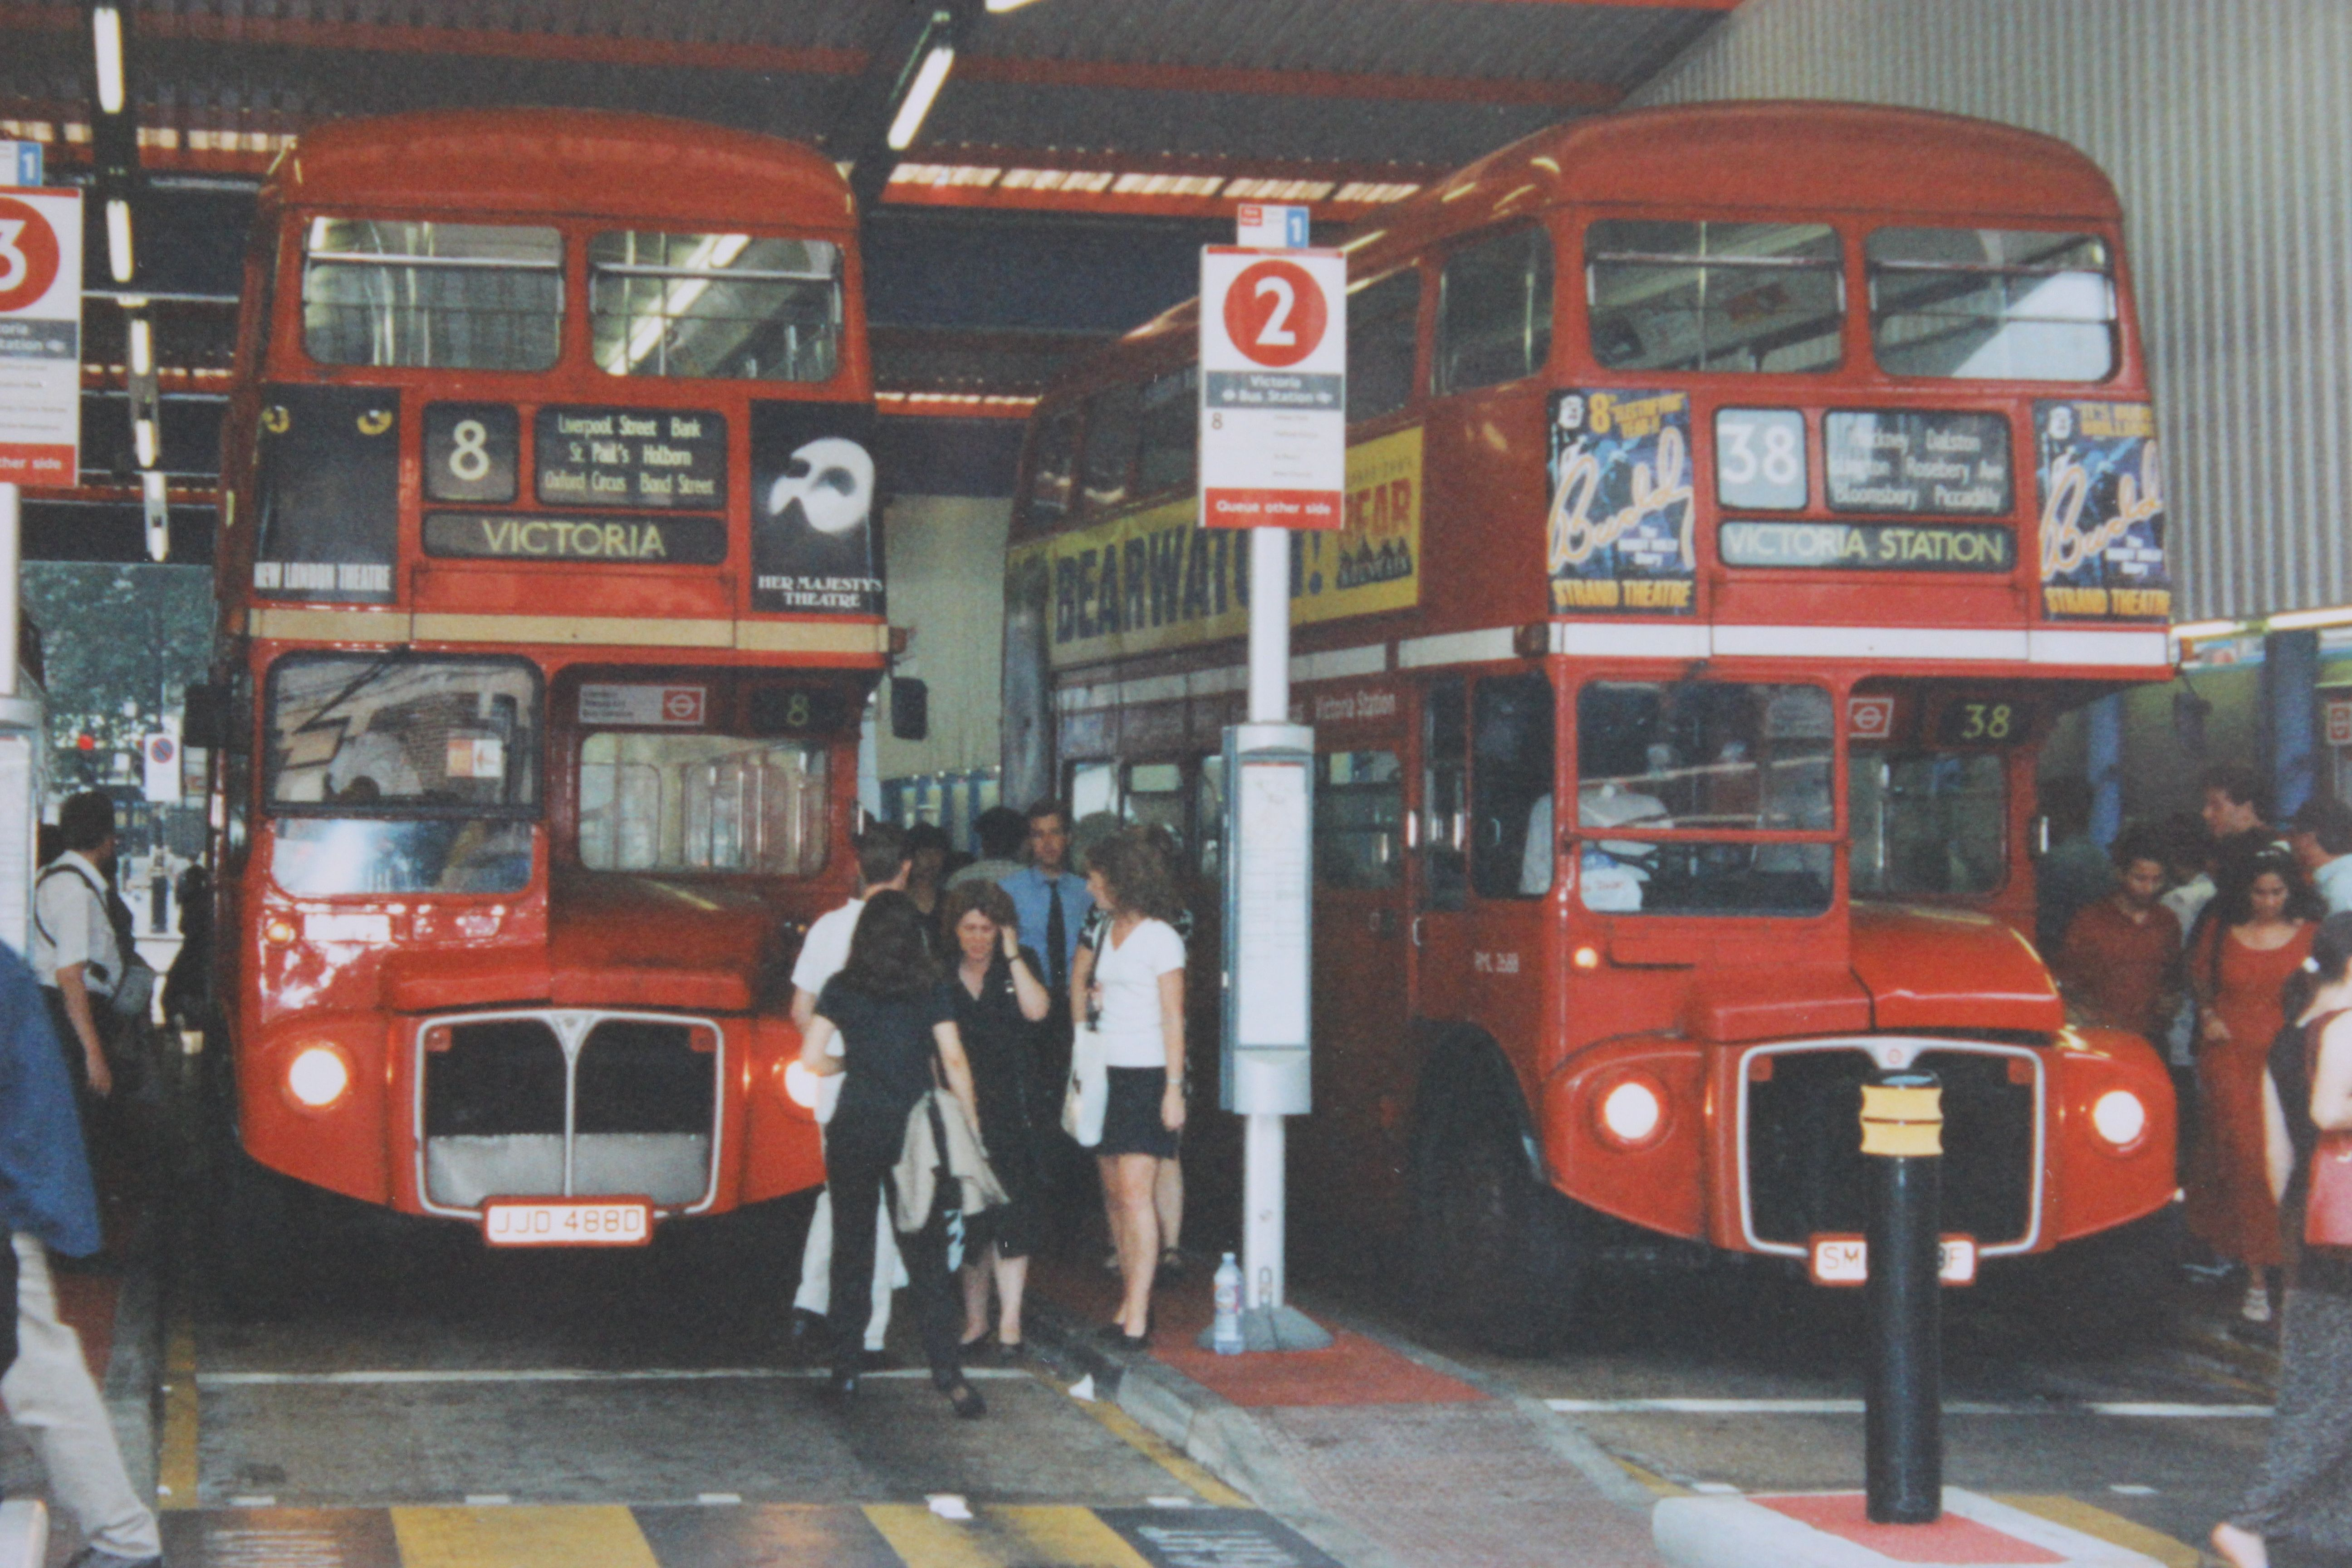 'Routemaster' buses at Victoria Bus Station